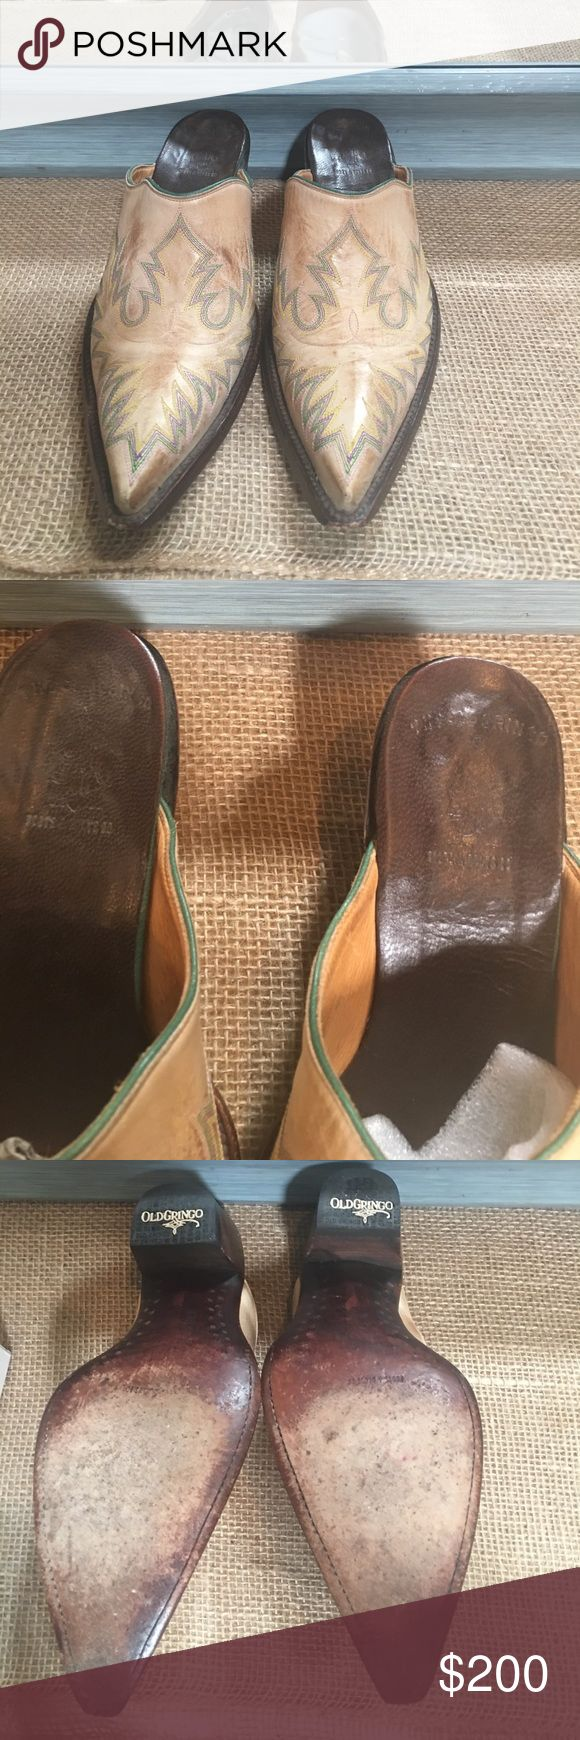 Old Gringo mules 8 Old Gringo Mules size 8 gently worn Old Gringo Shoes Ankle Boots & Booties